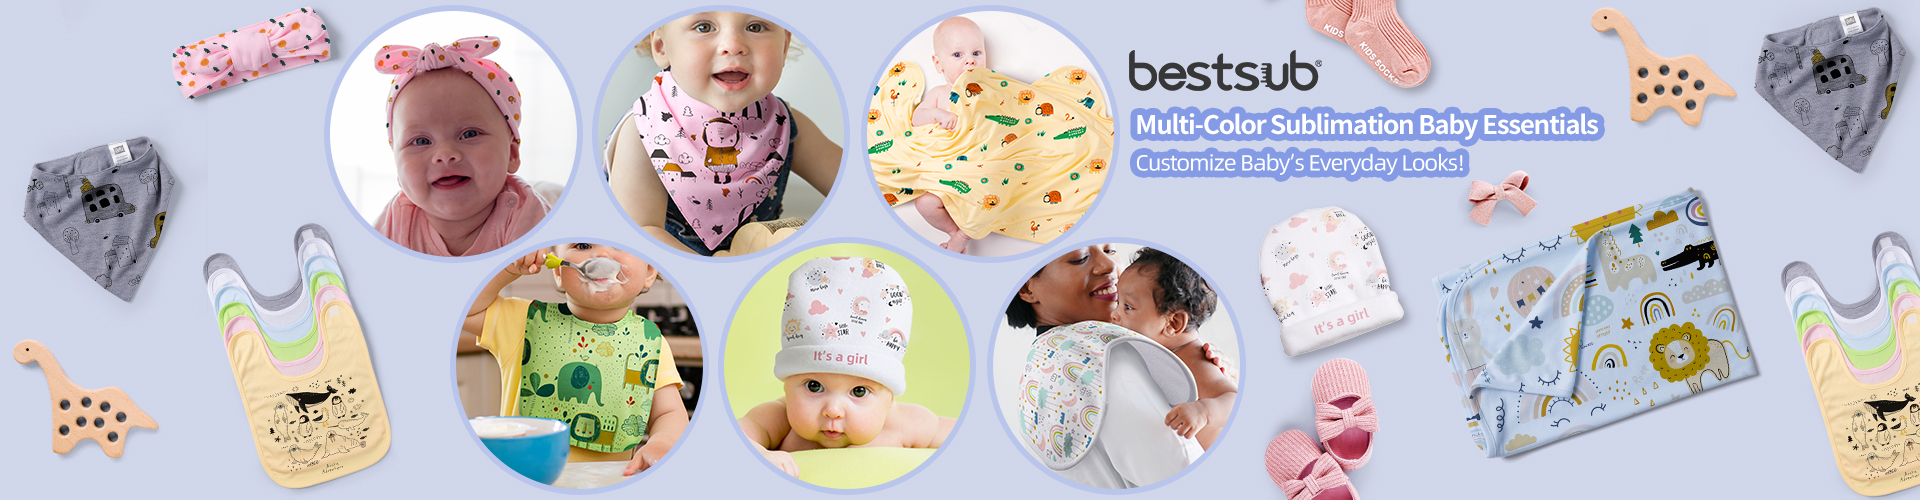 2021-04-28_Multi-Color_Sublimation_Baby_Essentials_new_web